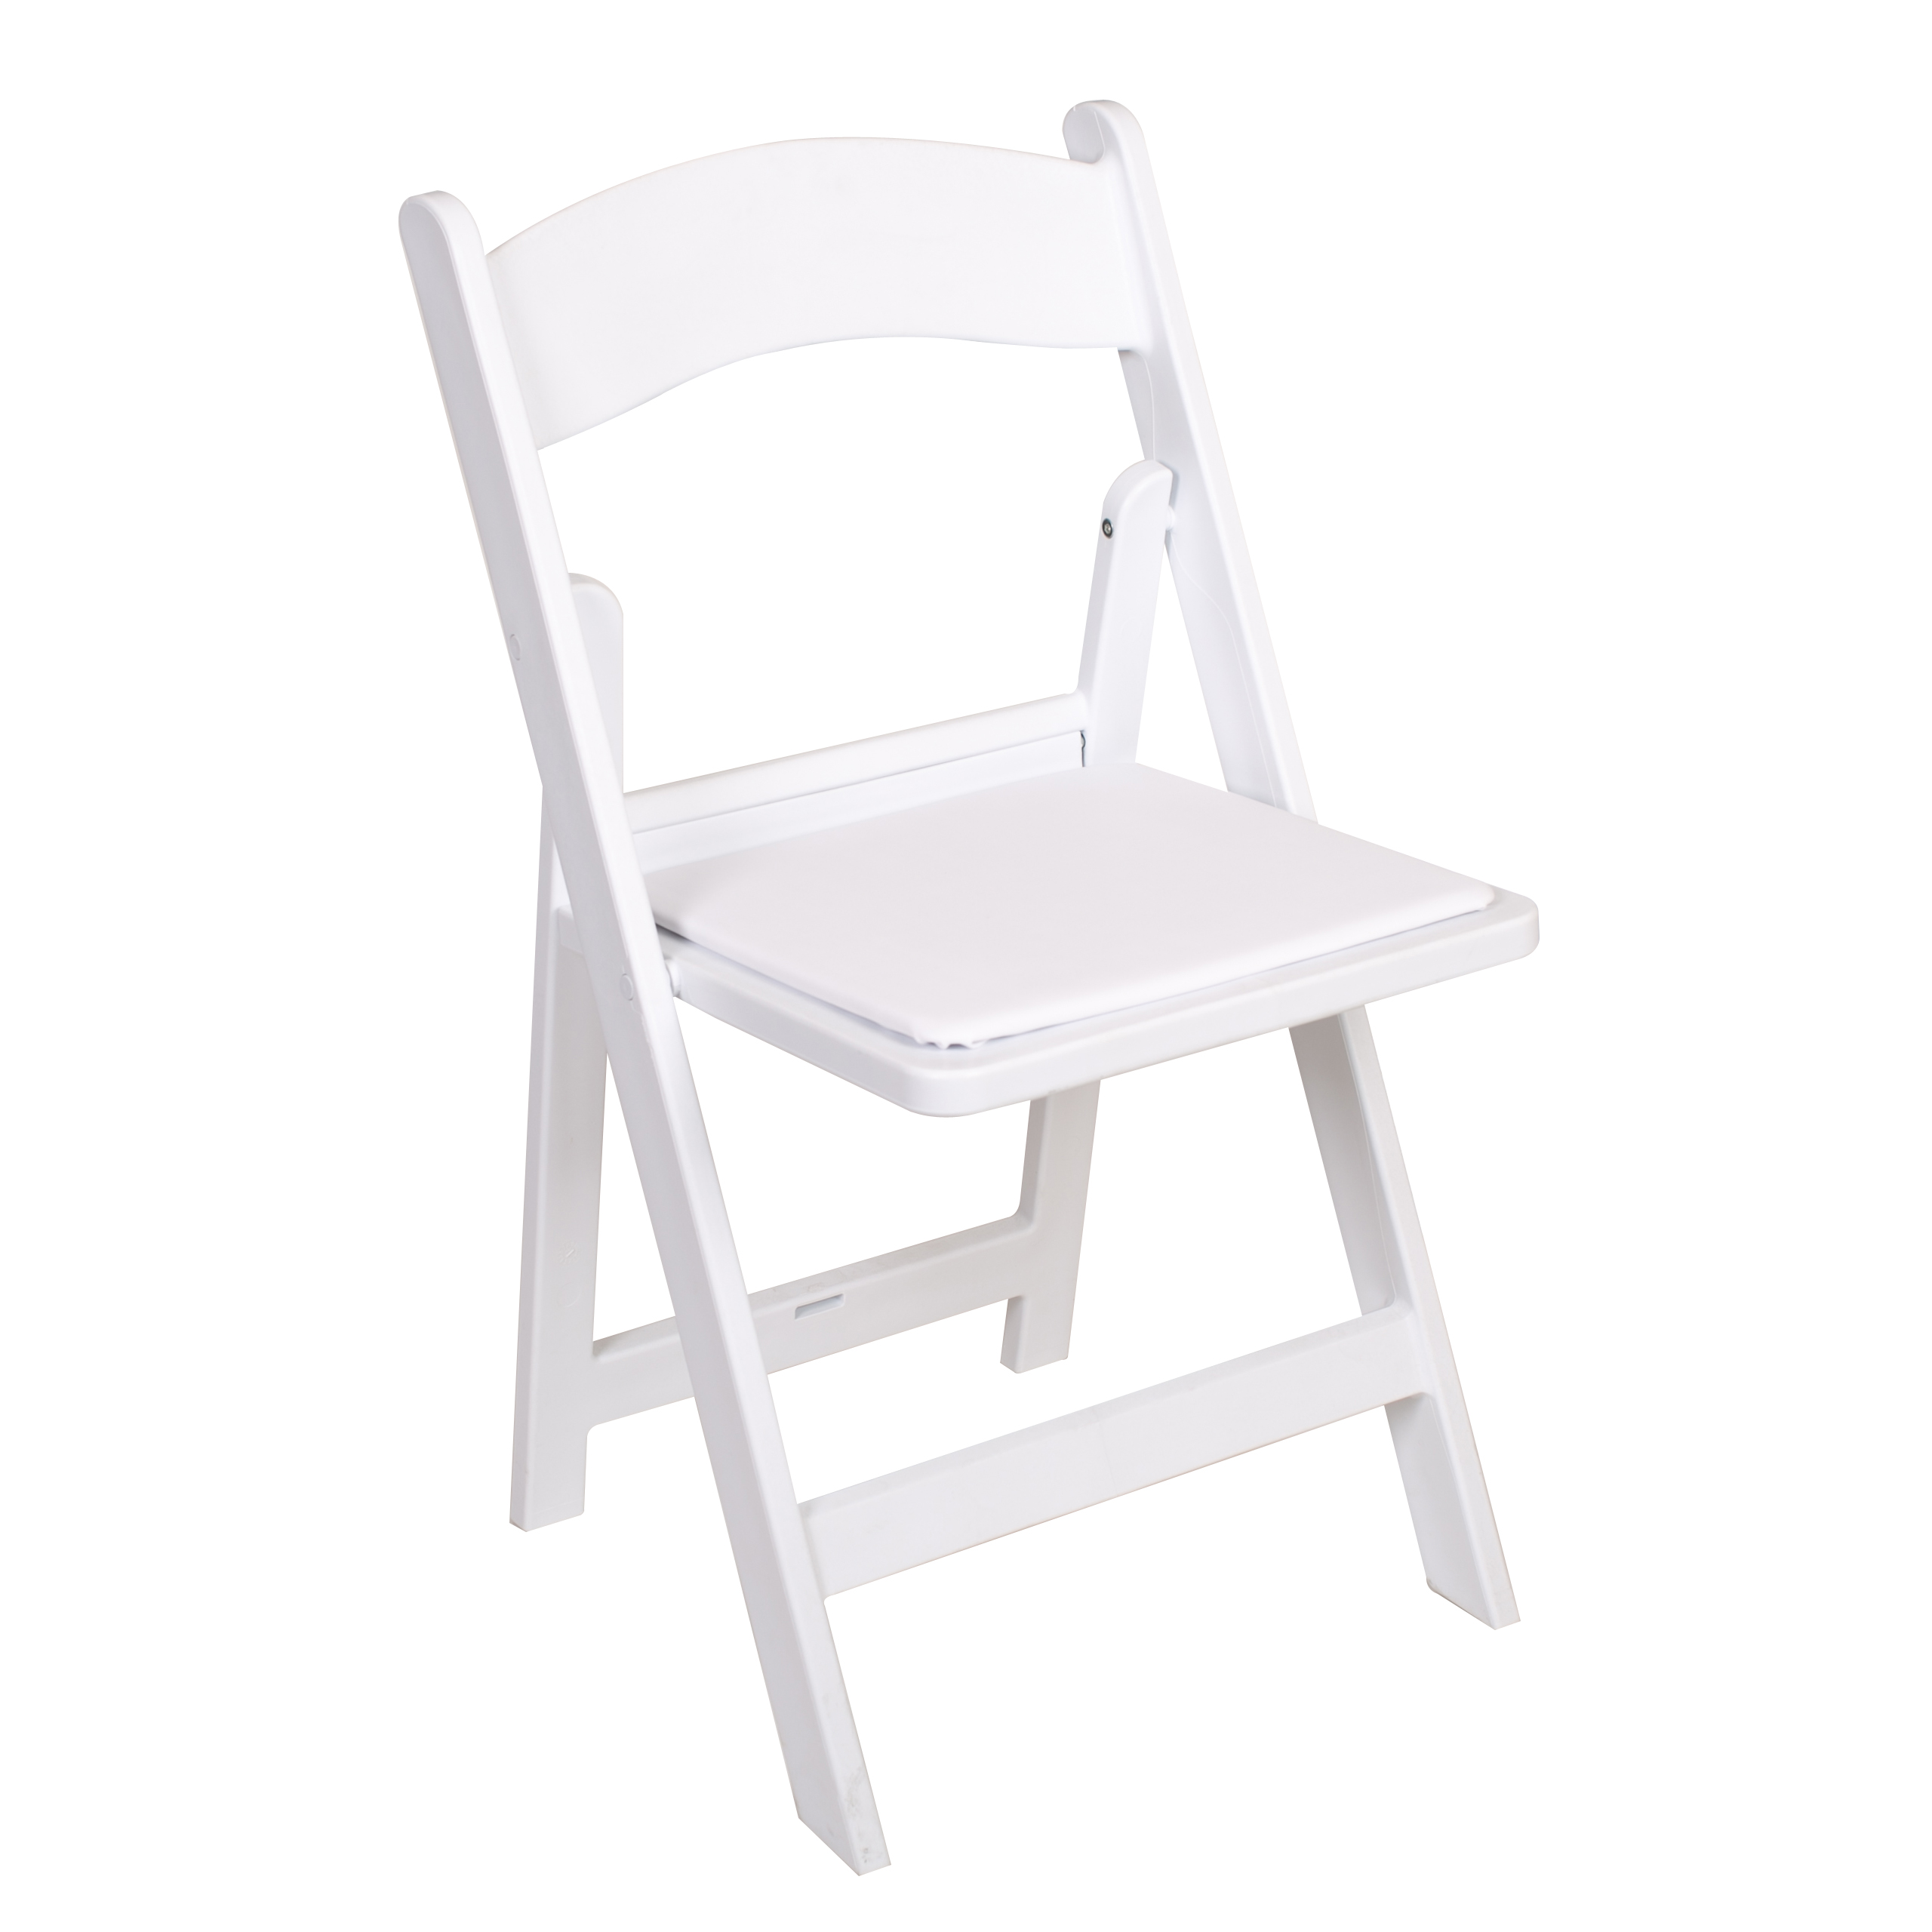 White resin wedding and event folding chair